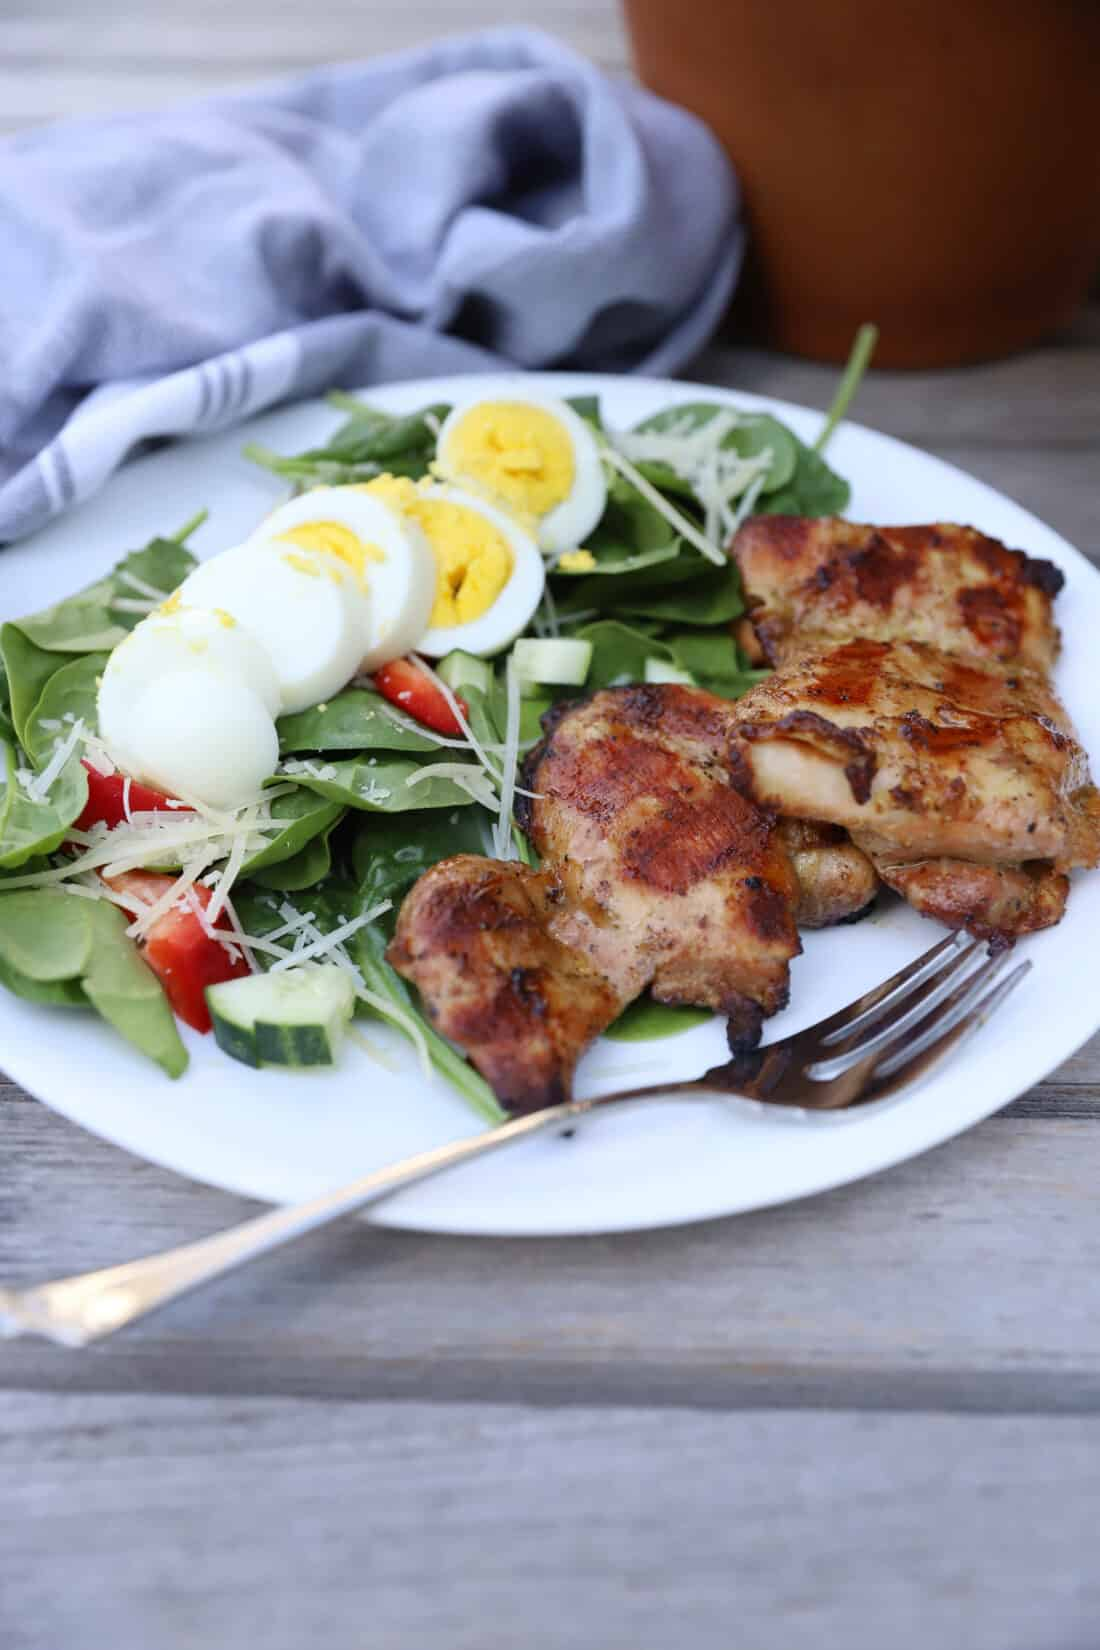 Grilled Smoked Chicken Thighs with a side salad